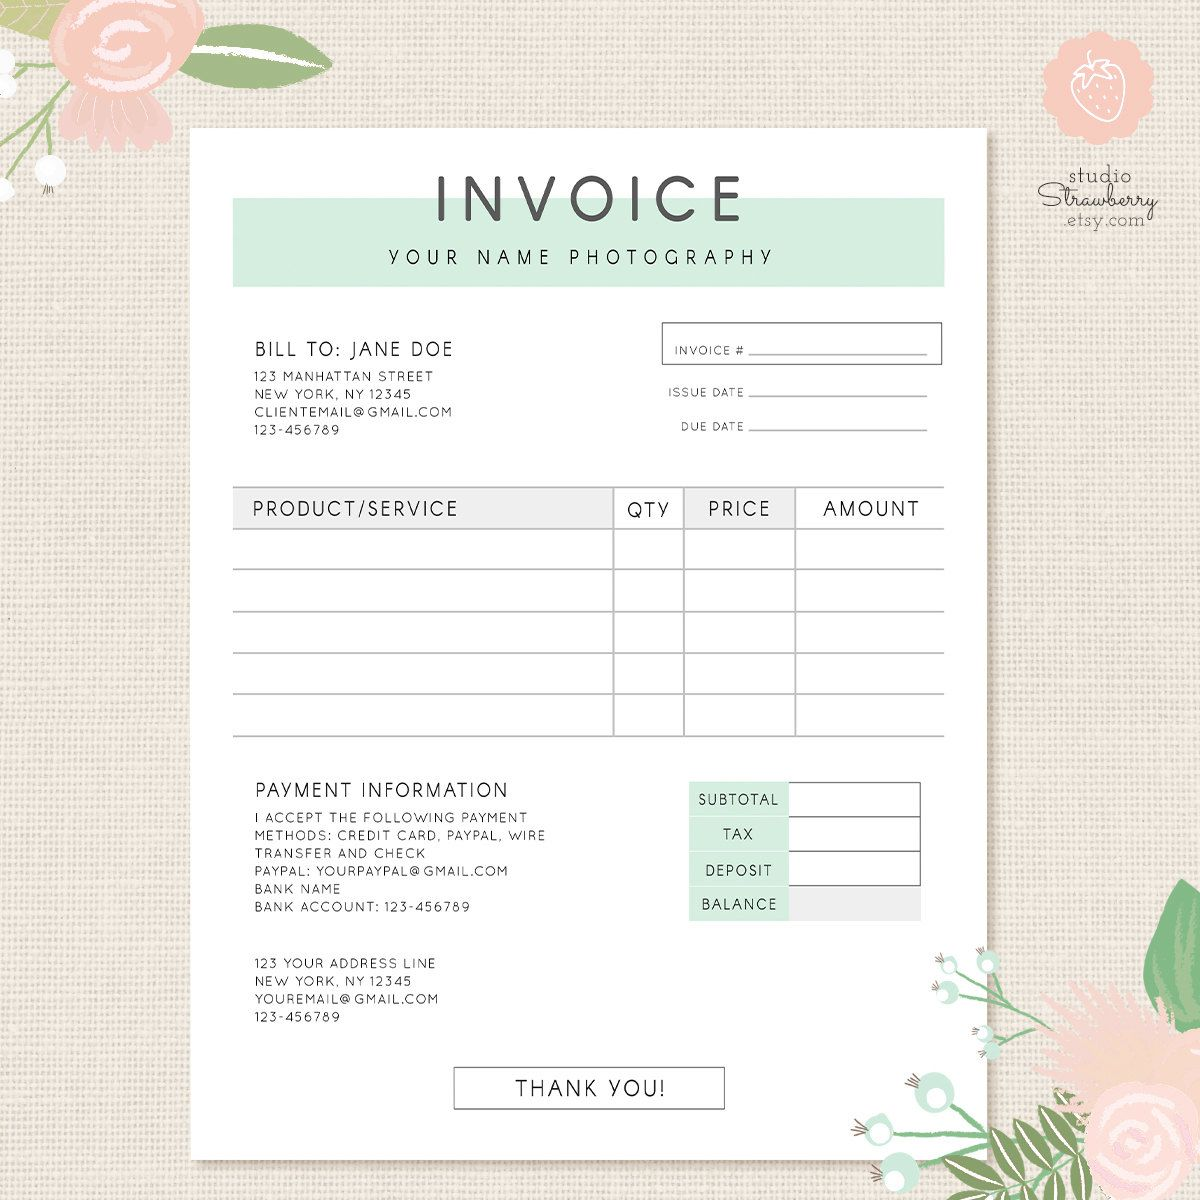 Invoice Template Photography Invoice Business Invoice Receipt Template For Photographers Photography Forms Photoshop Template Psd File. microsoft excel xls. free business invoice template download. free small business labor invoices free invoice template sample invoice 2. preview invoice template as picture. catering receipt template catering invoice catering invoice